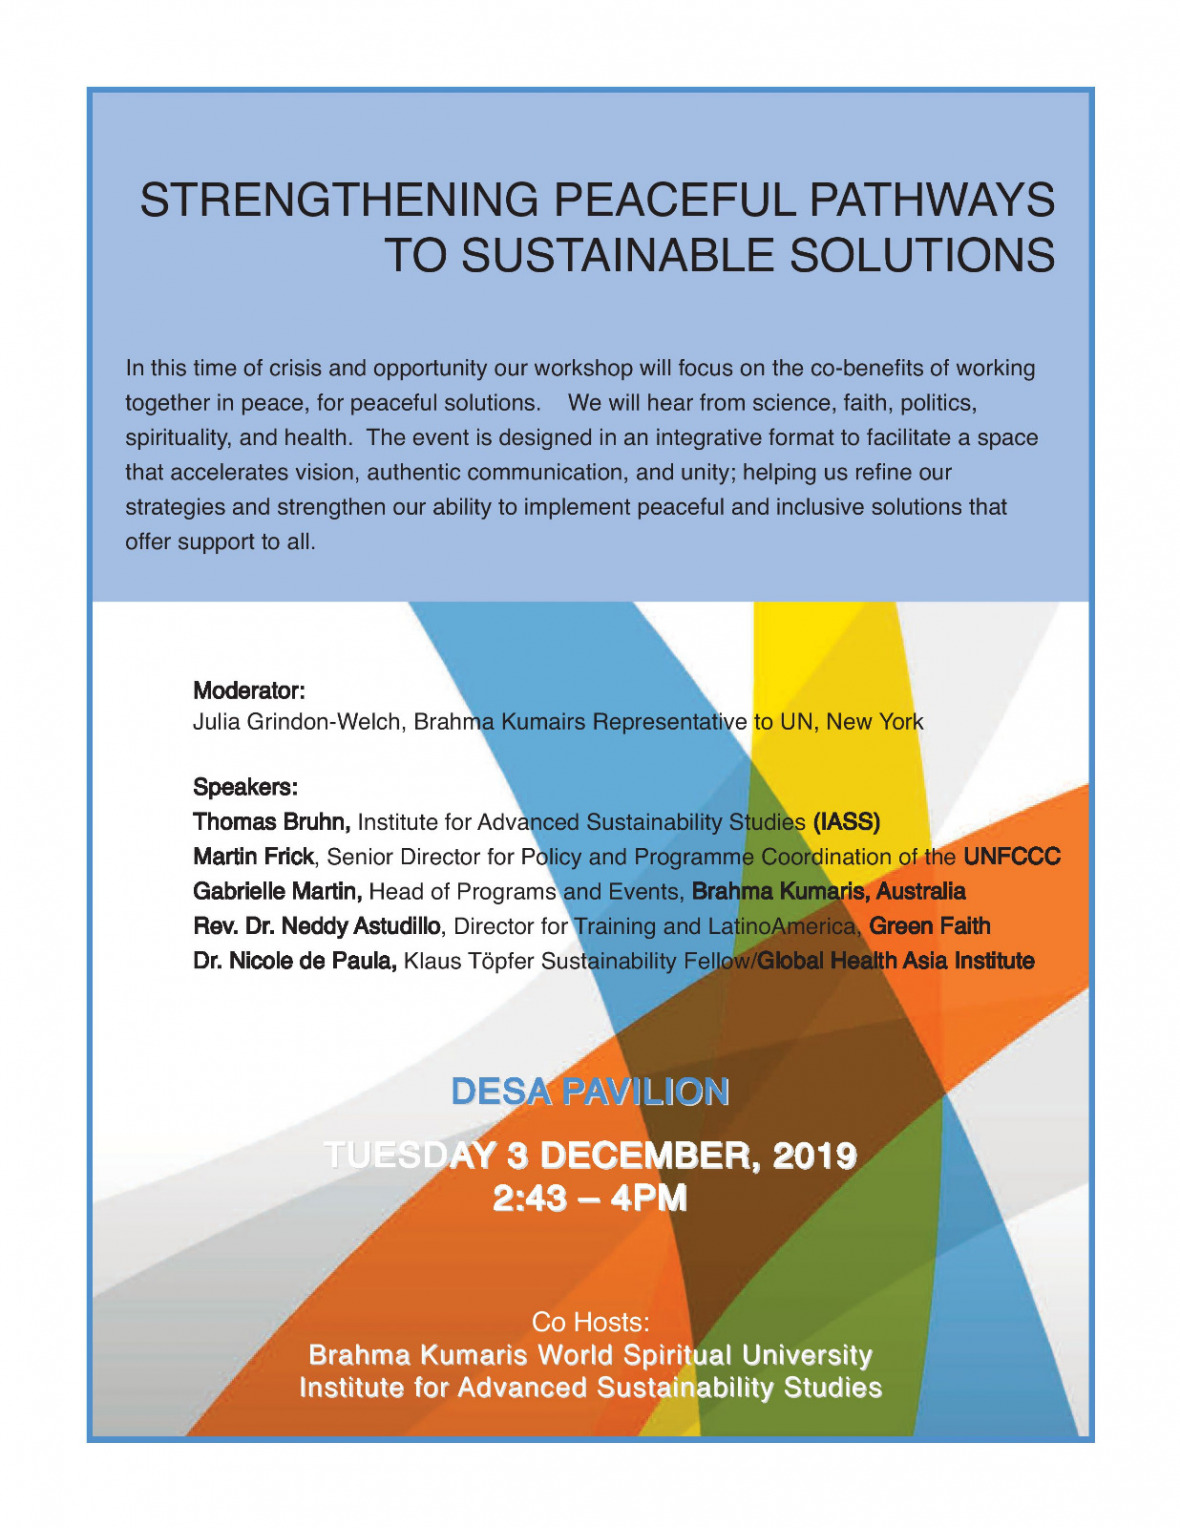 Strengthening peacefull pathways to sustainable solutions